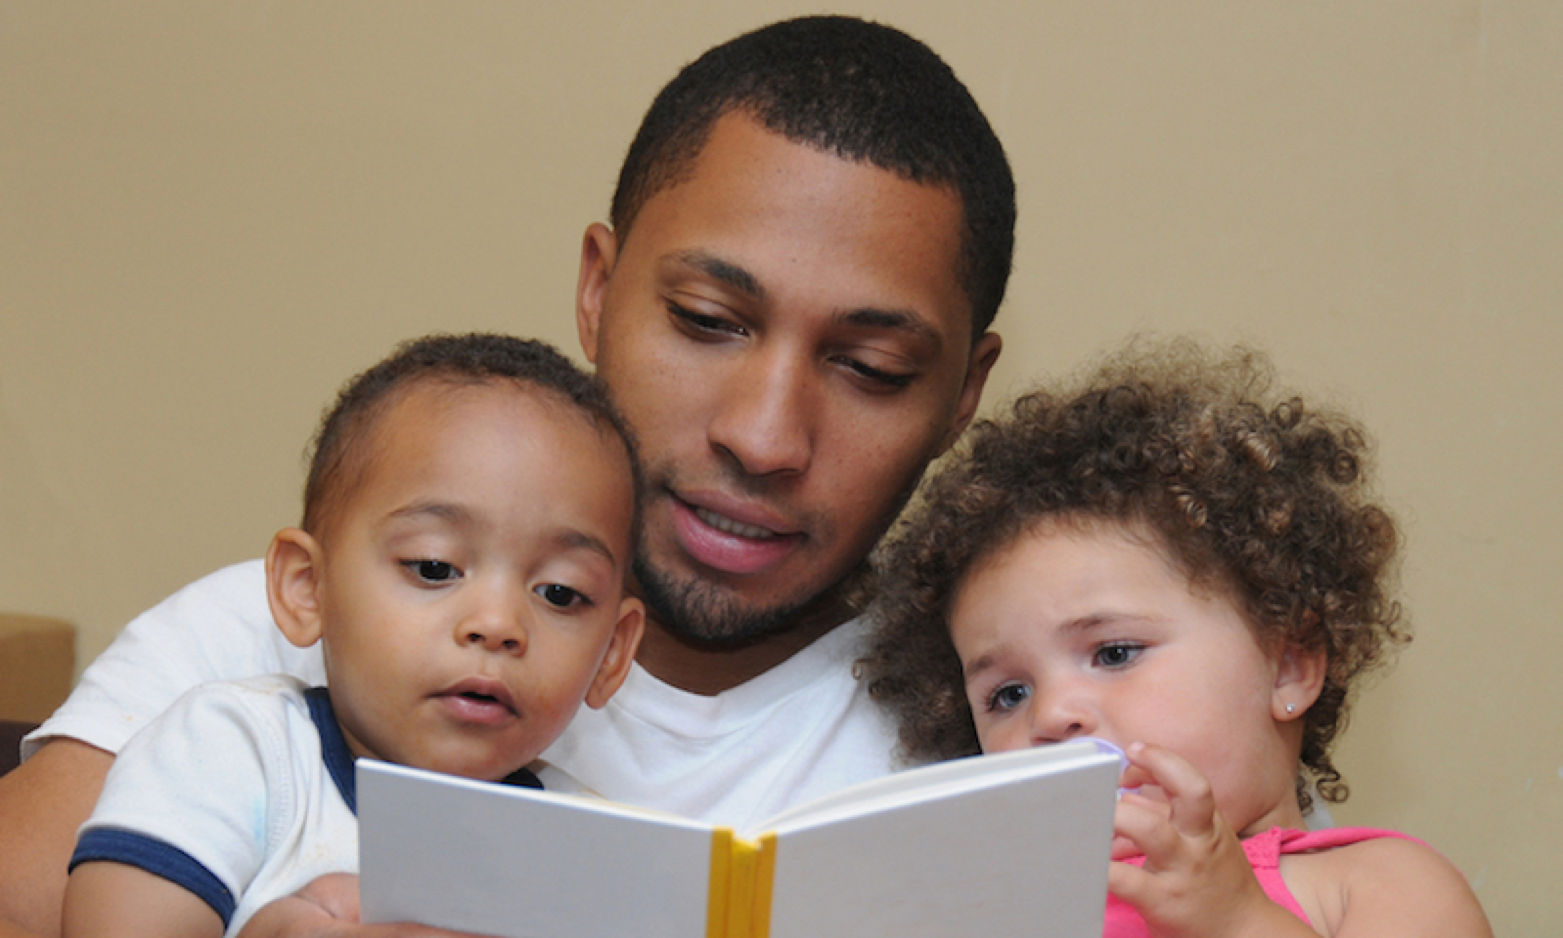 A good way to engage fathers is to focus on child cognitive development